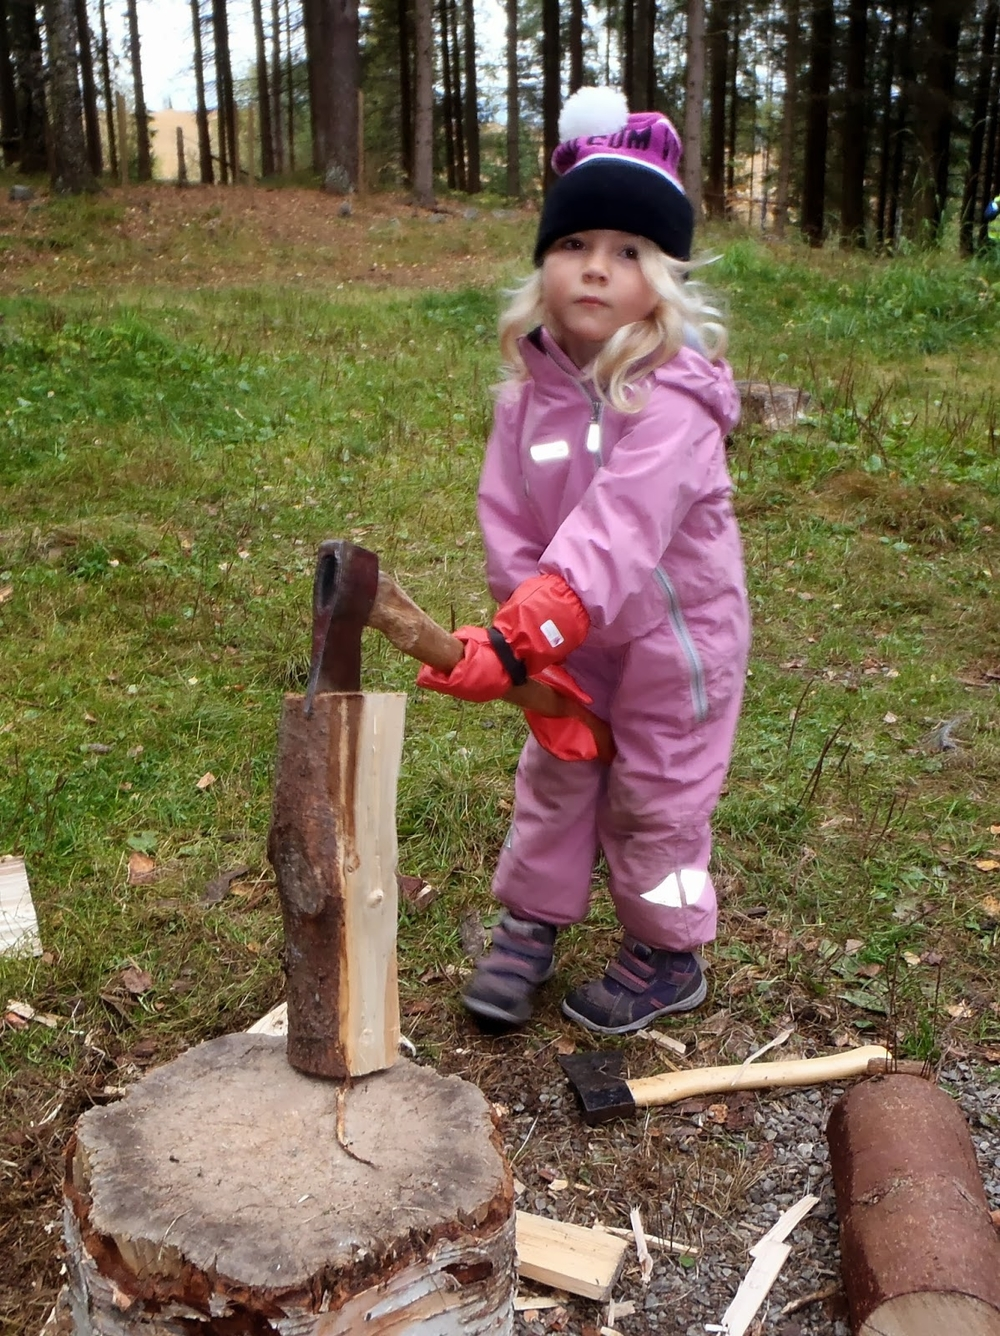 Learning to use an axe is a part of a typical day at Flekkenga